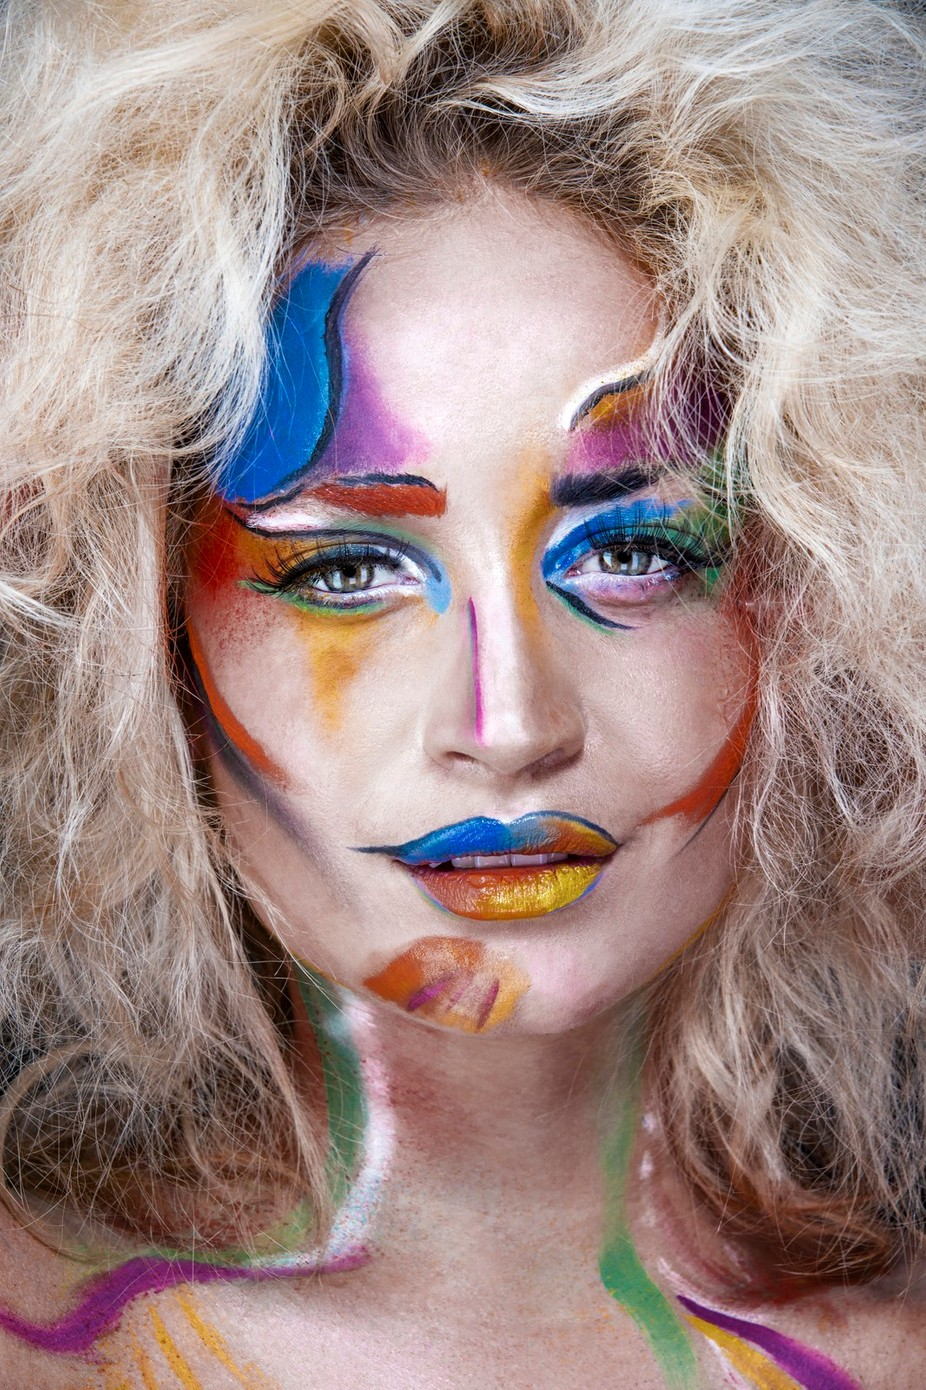 Painted Goddess by jrigbyphotography - Paint And Makeup Photo Contest